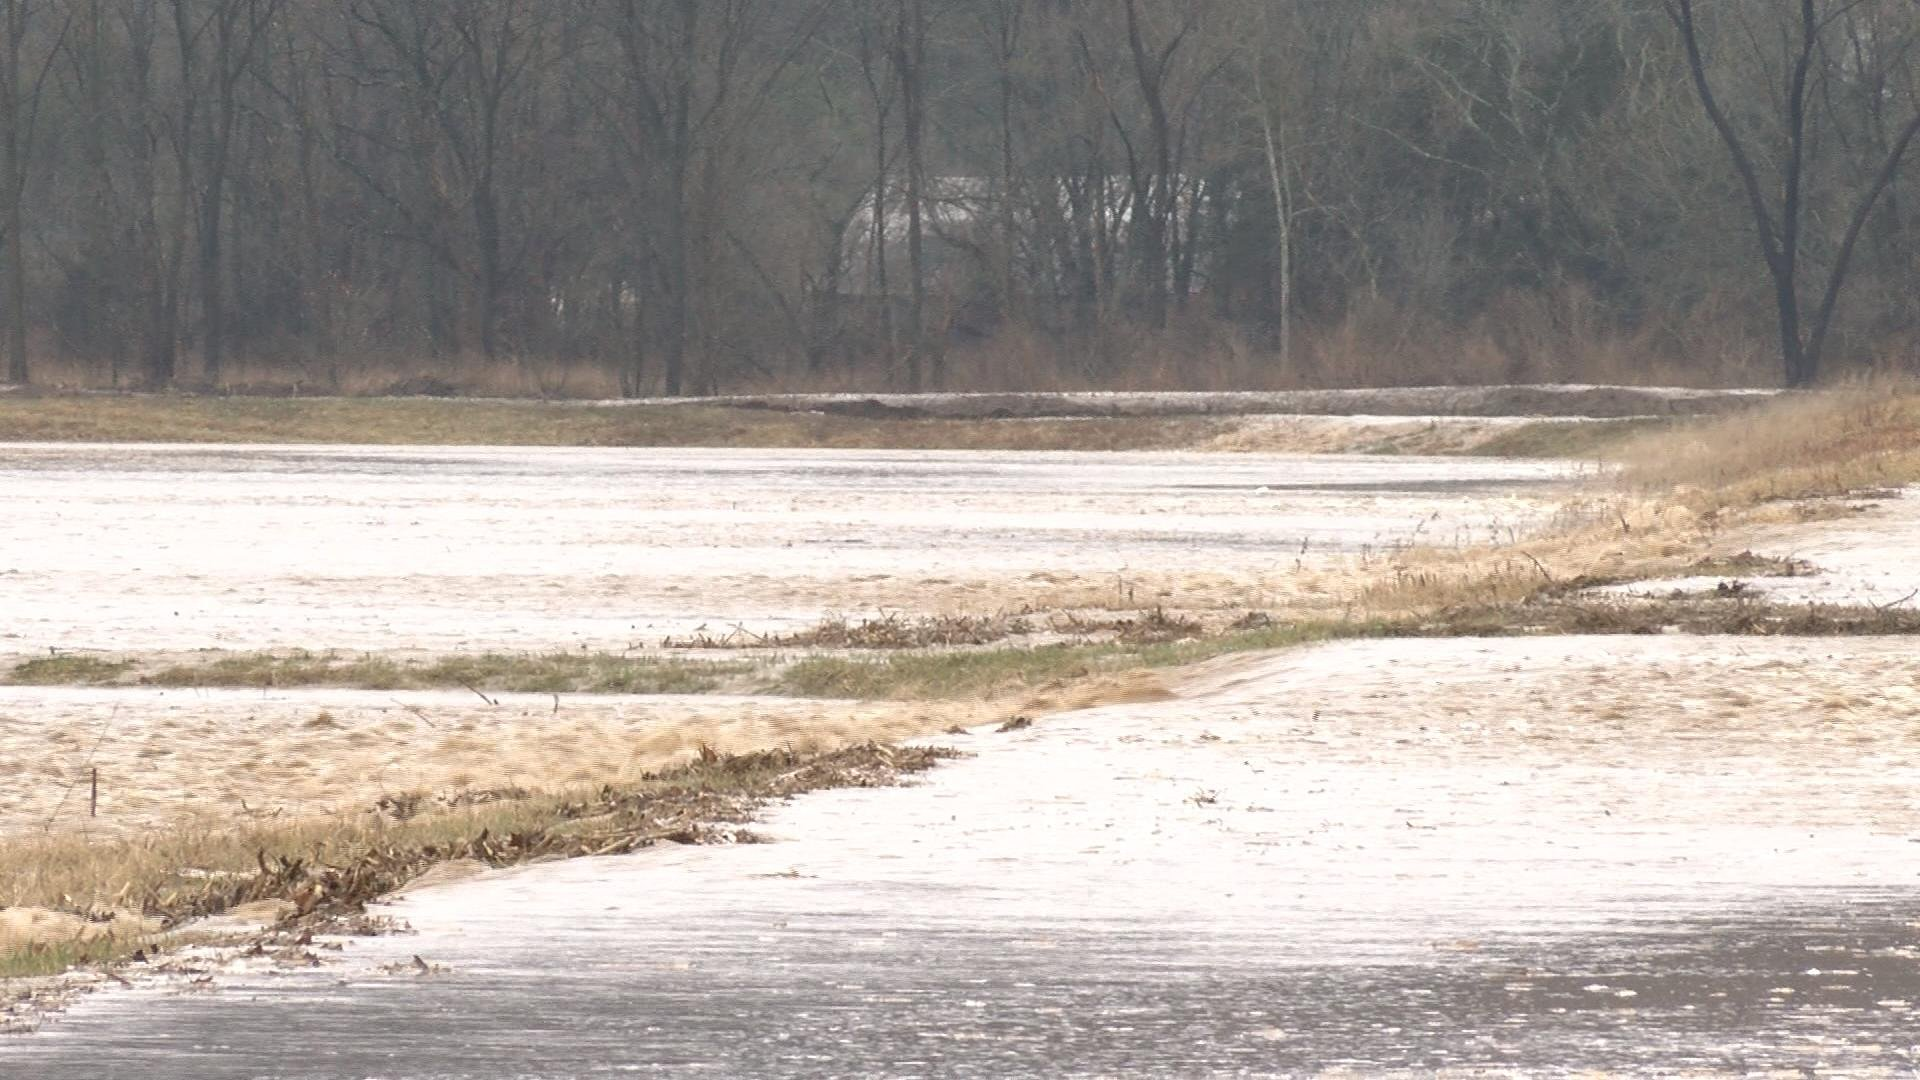 Much of the area around Highway F was covered in floodwater.